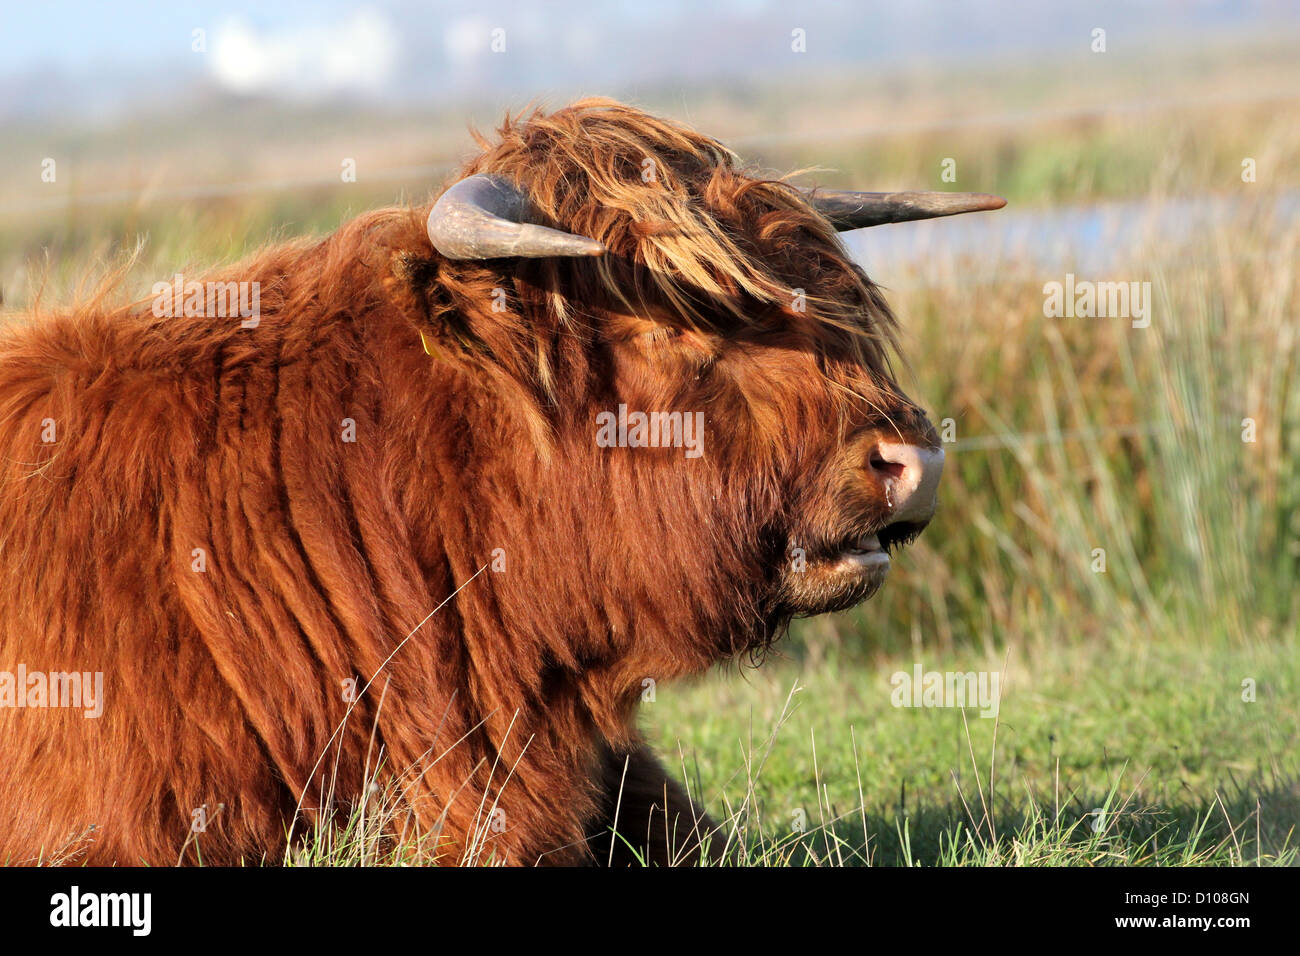 Portrait of a hairy Highland cow lying in the grass ruminating, set against a marshy grassland - Stock Image